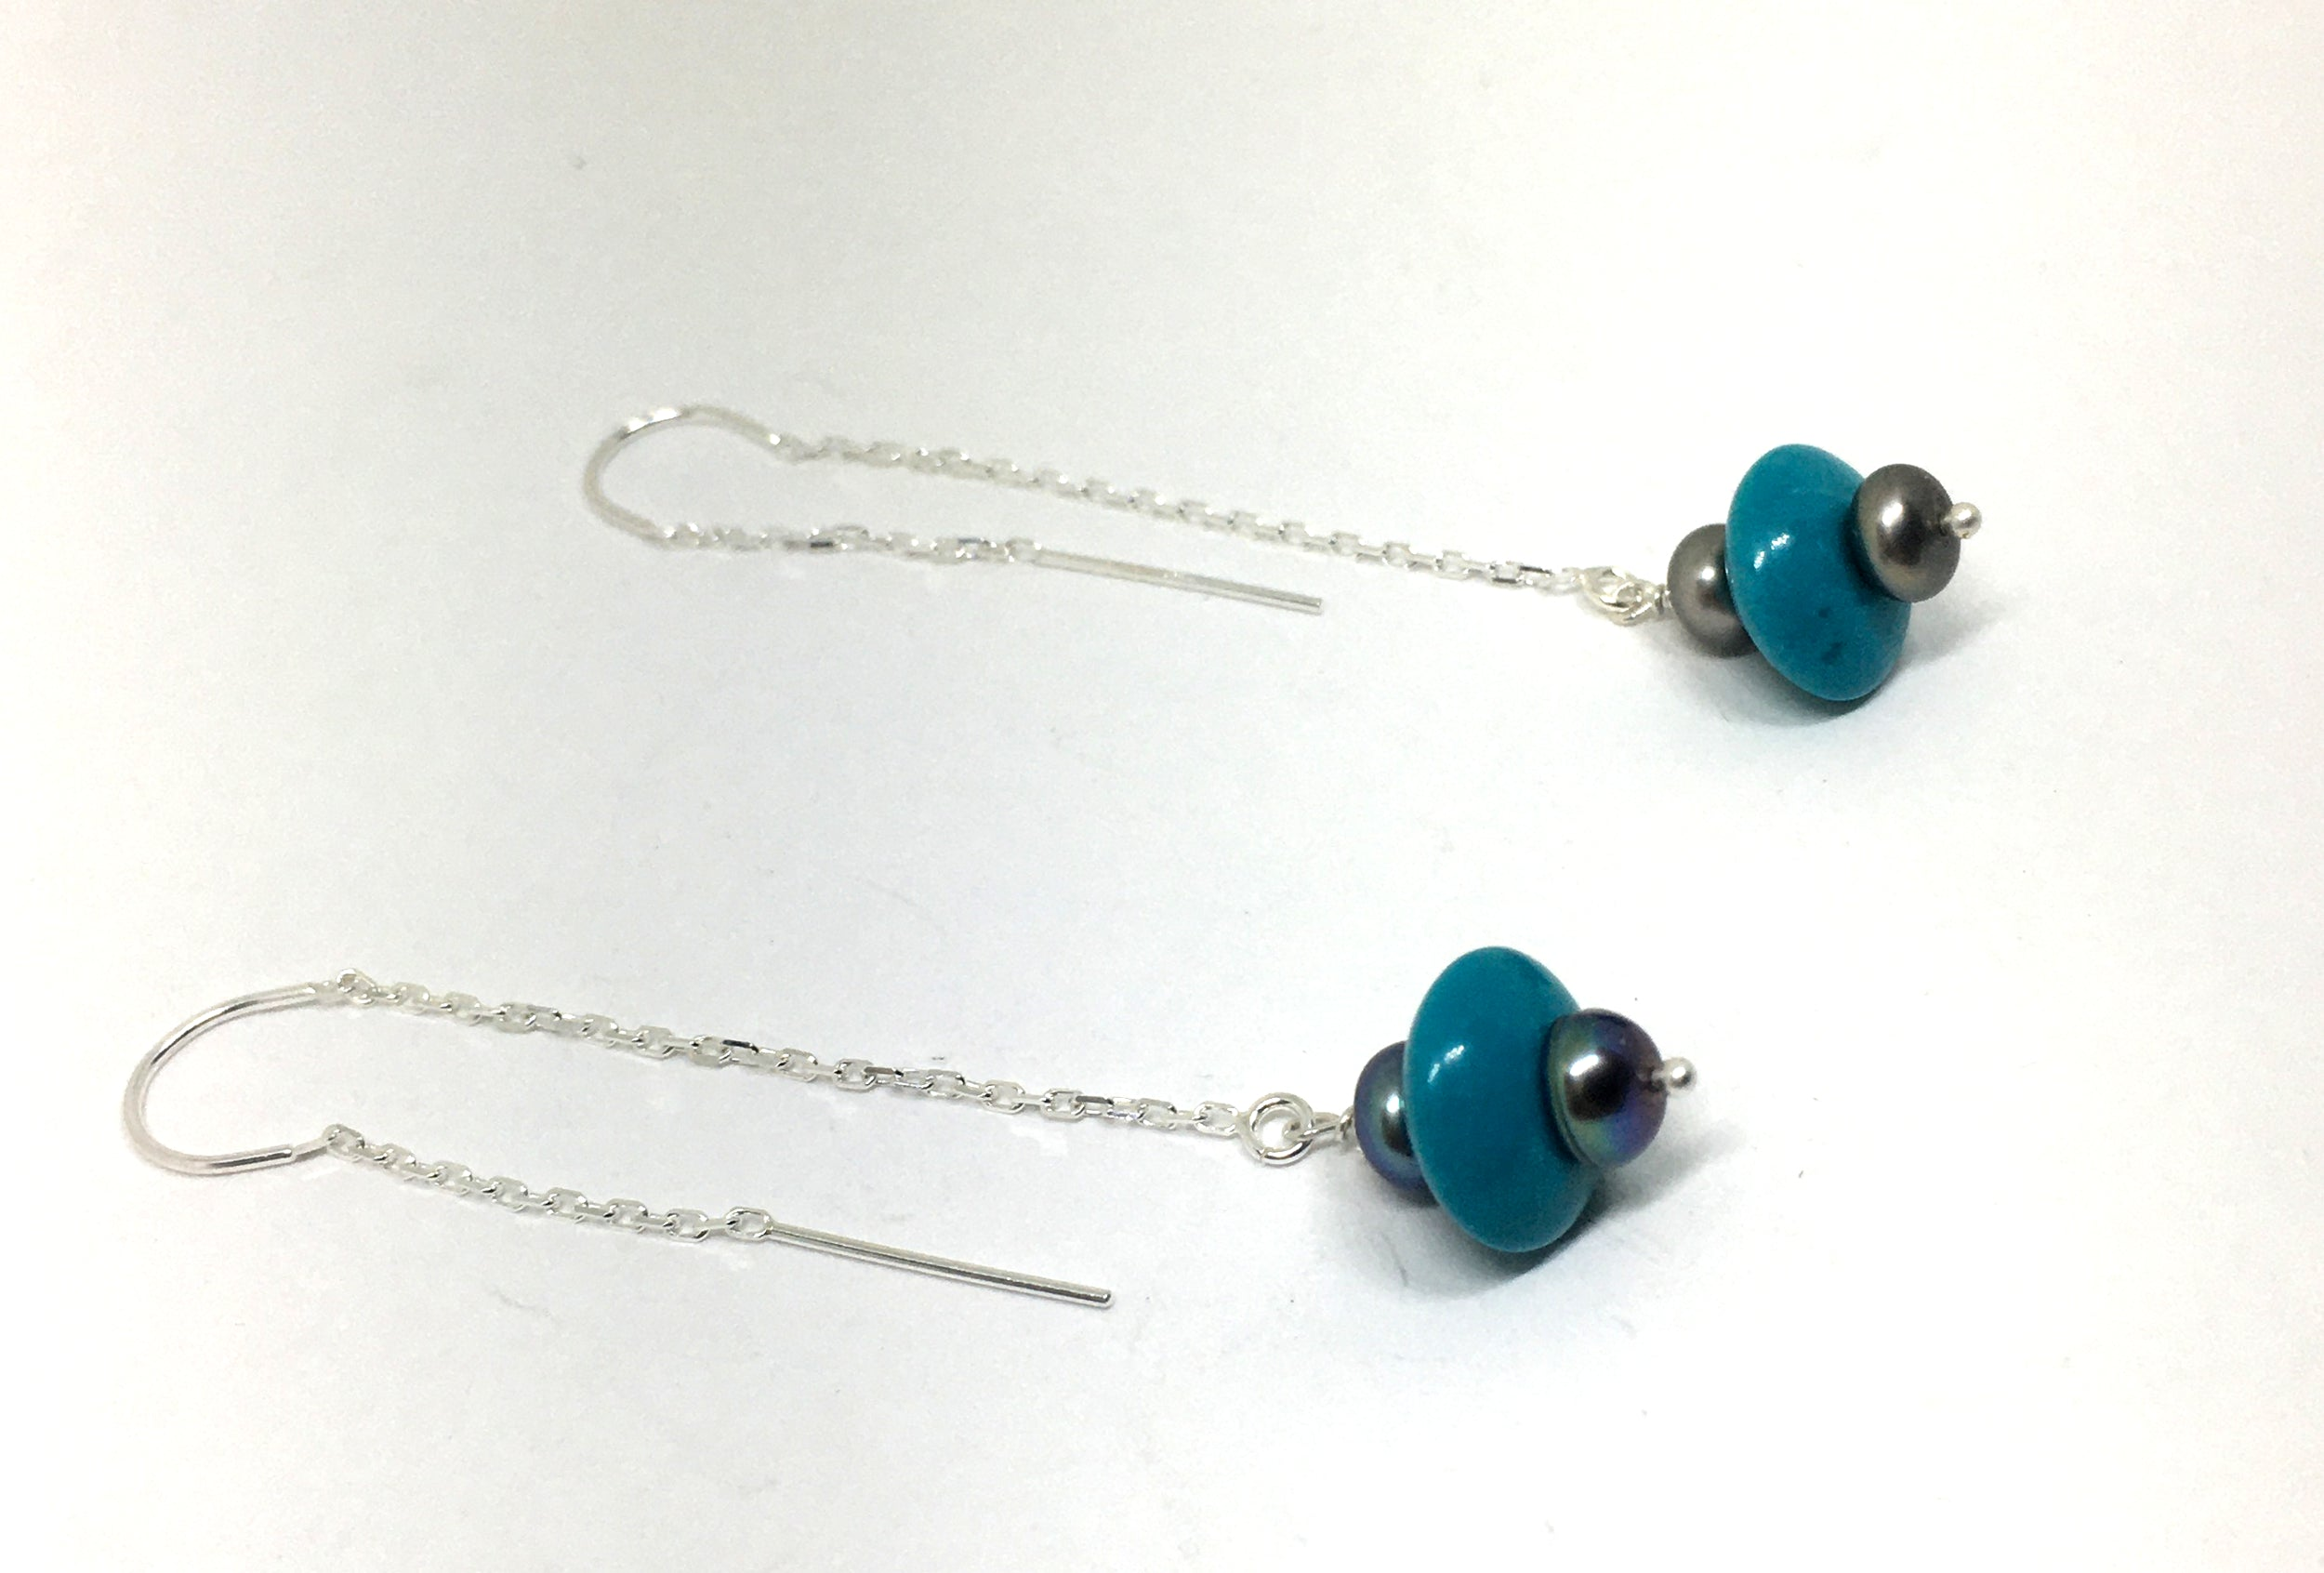 Turquoise and Pearl Threader Earrings in Sterling Silver